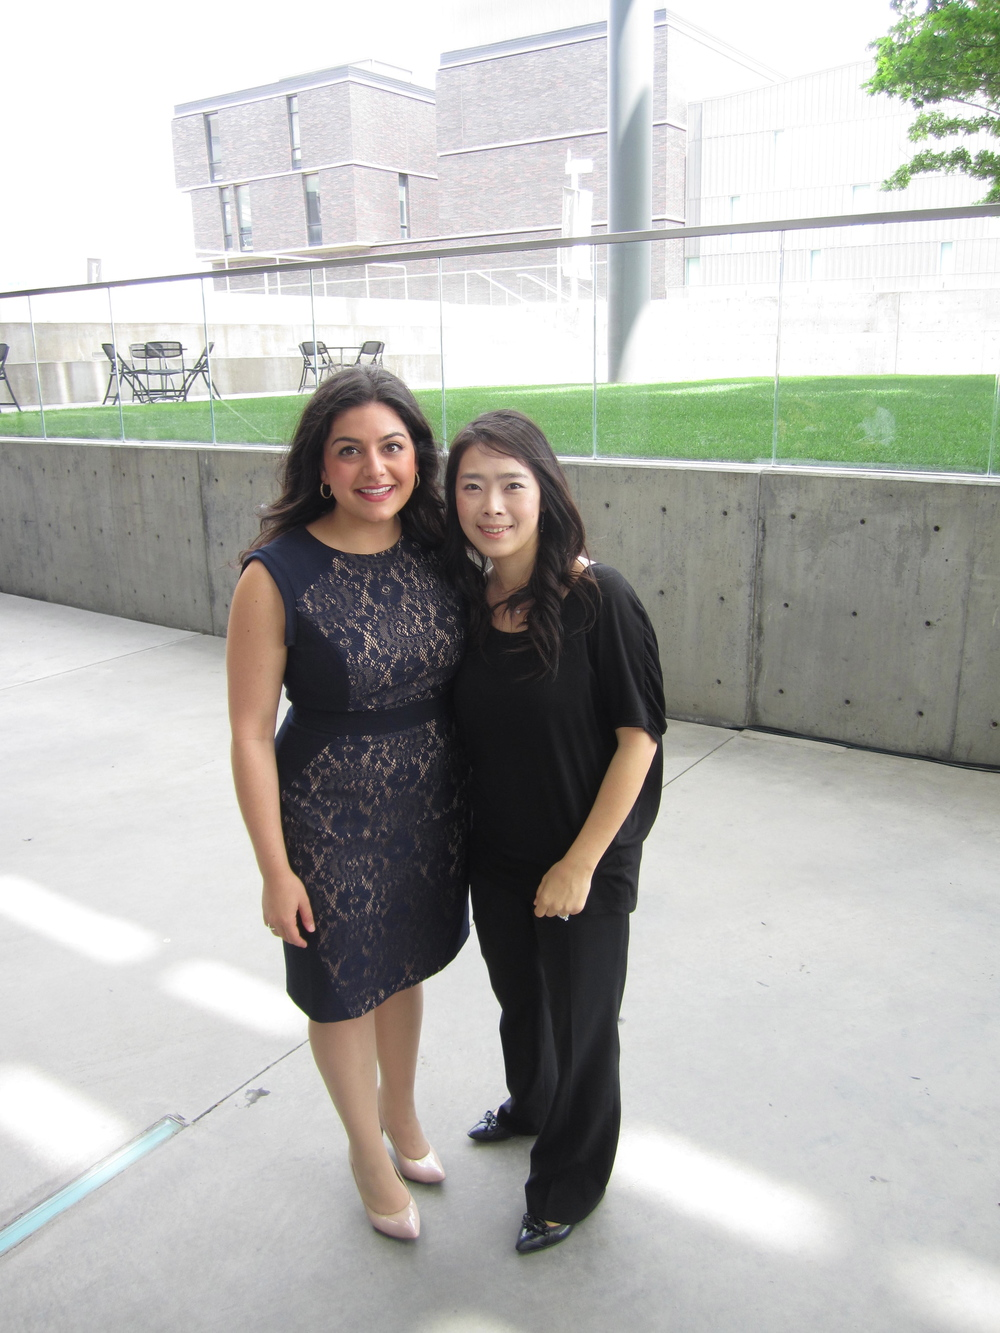 Myself and Hee-Young outside the Winspear after the recital.